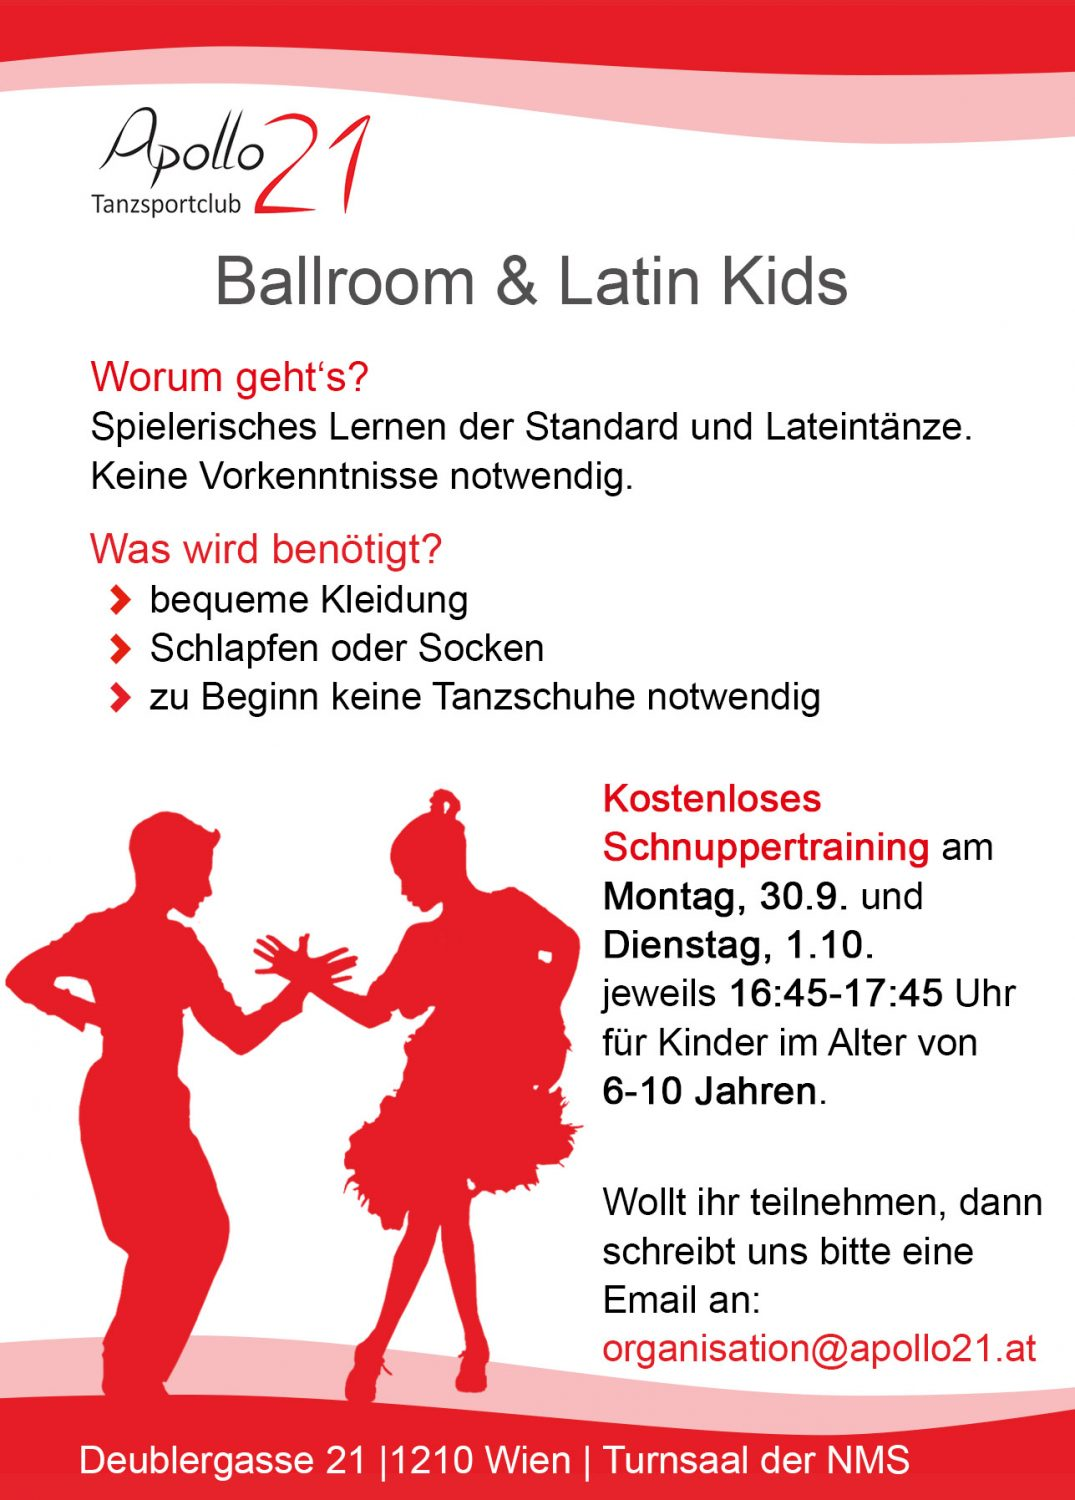 Apollo21 Ballroom & Latin KiDS – Schnuppertrainings